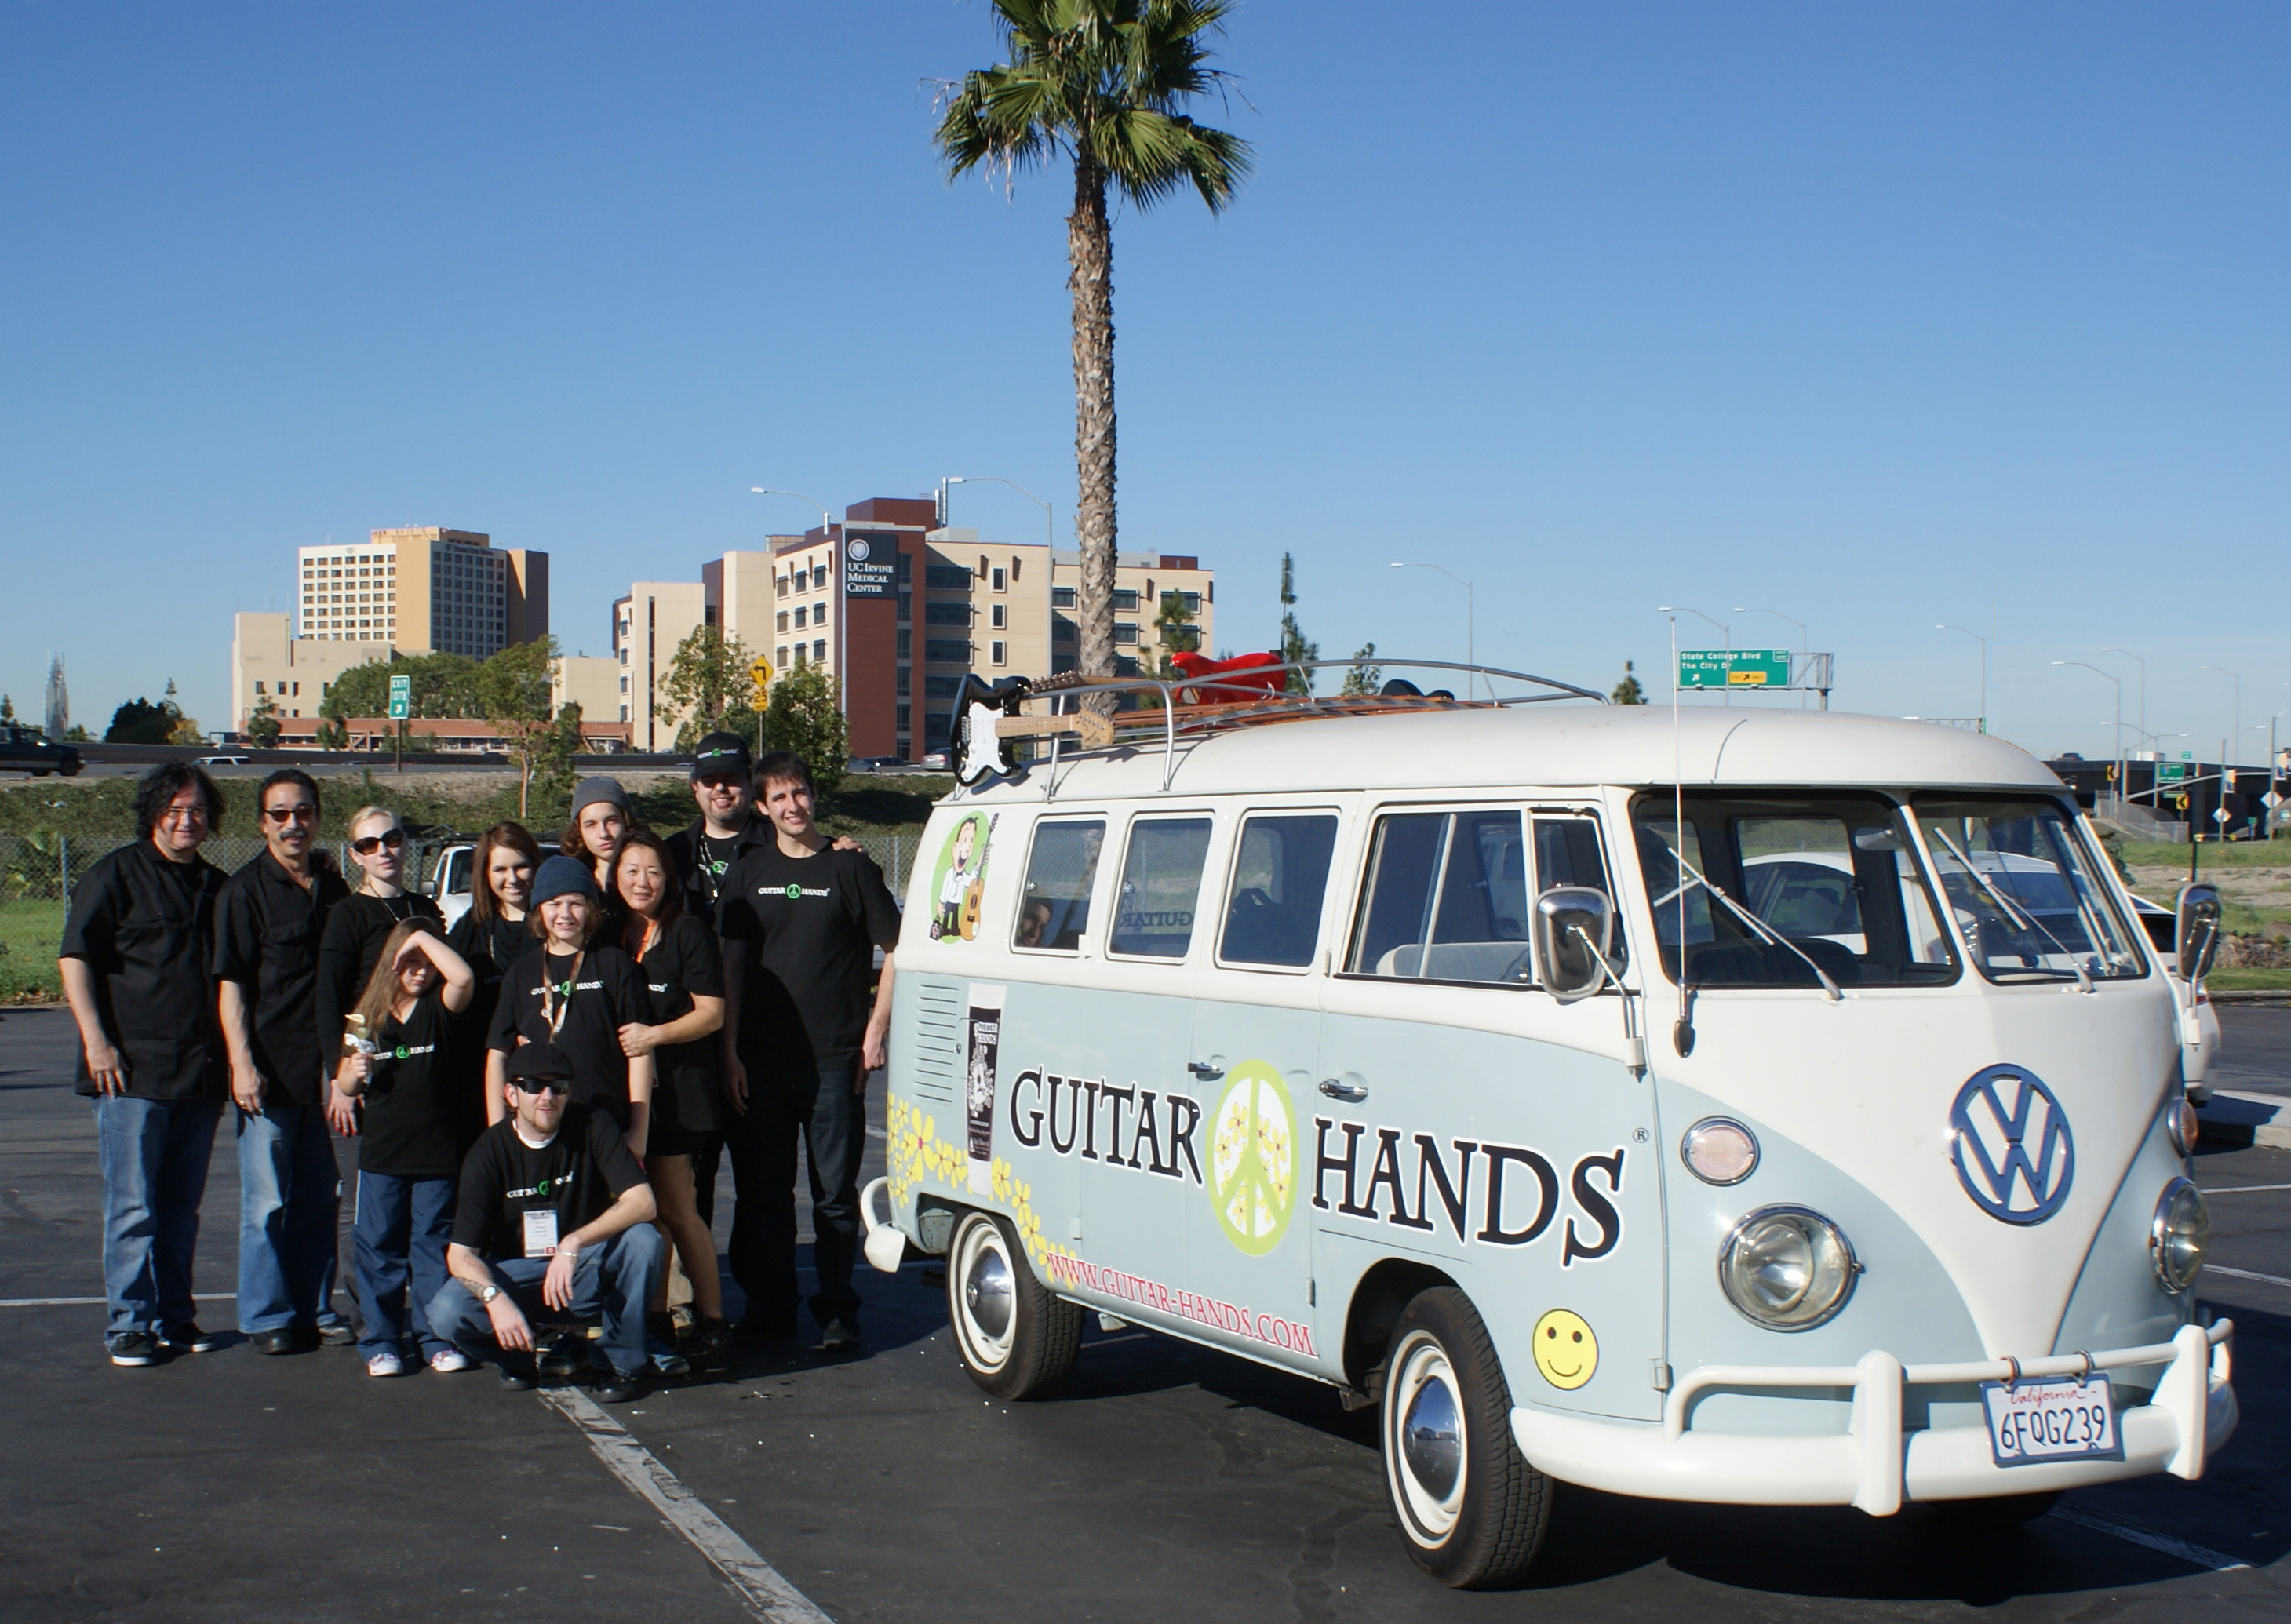 Guitar Hands Bus